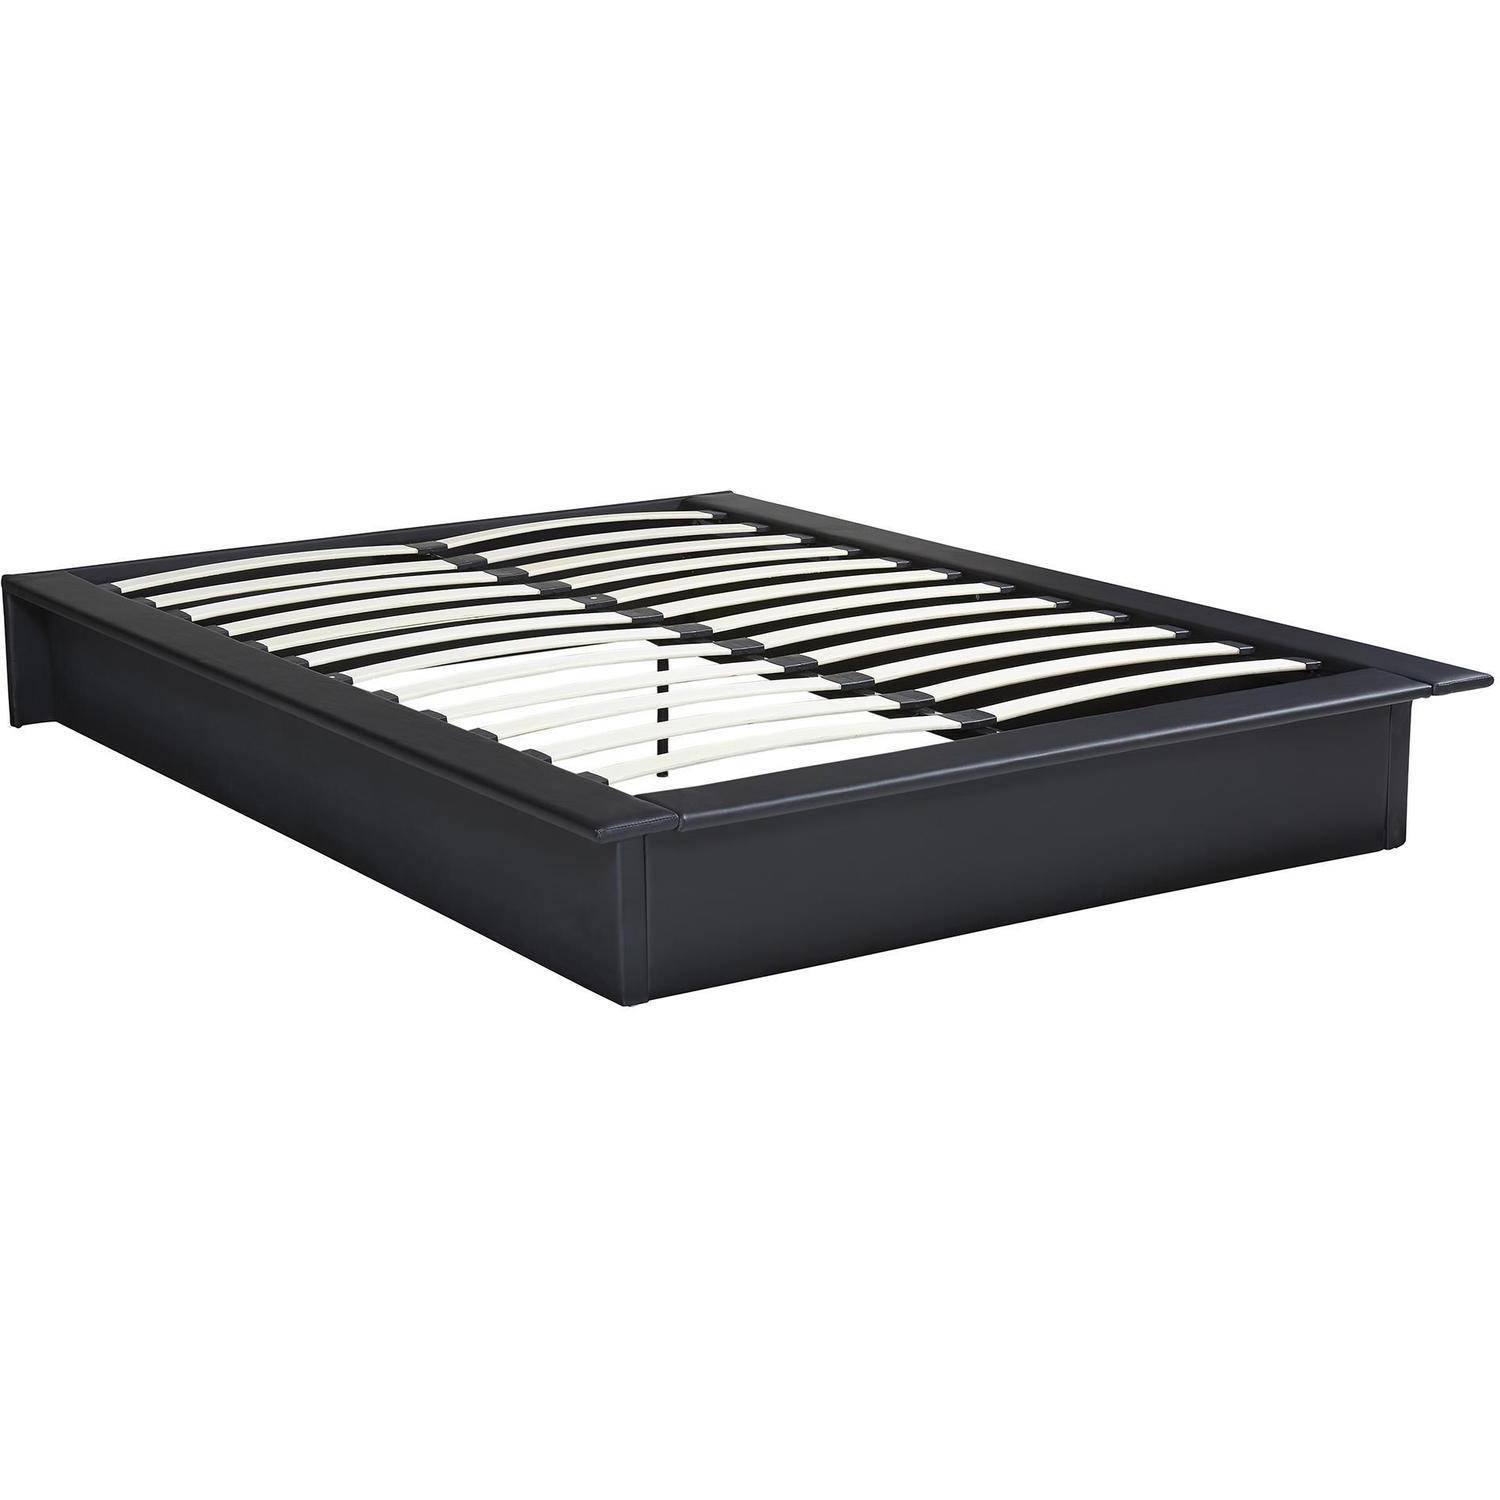 maven upholstered faux leather platform bed black multiple sizes walmartcom - Black Platform Bed Frame